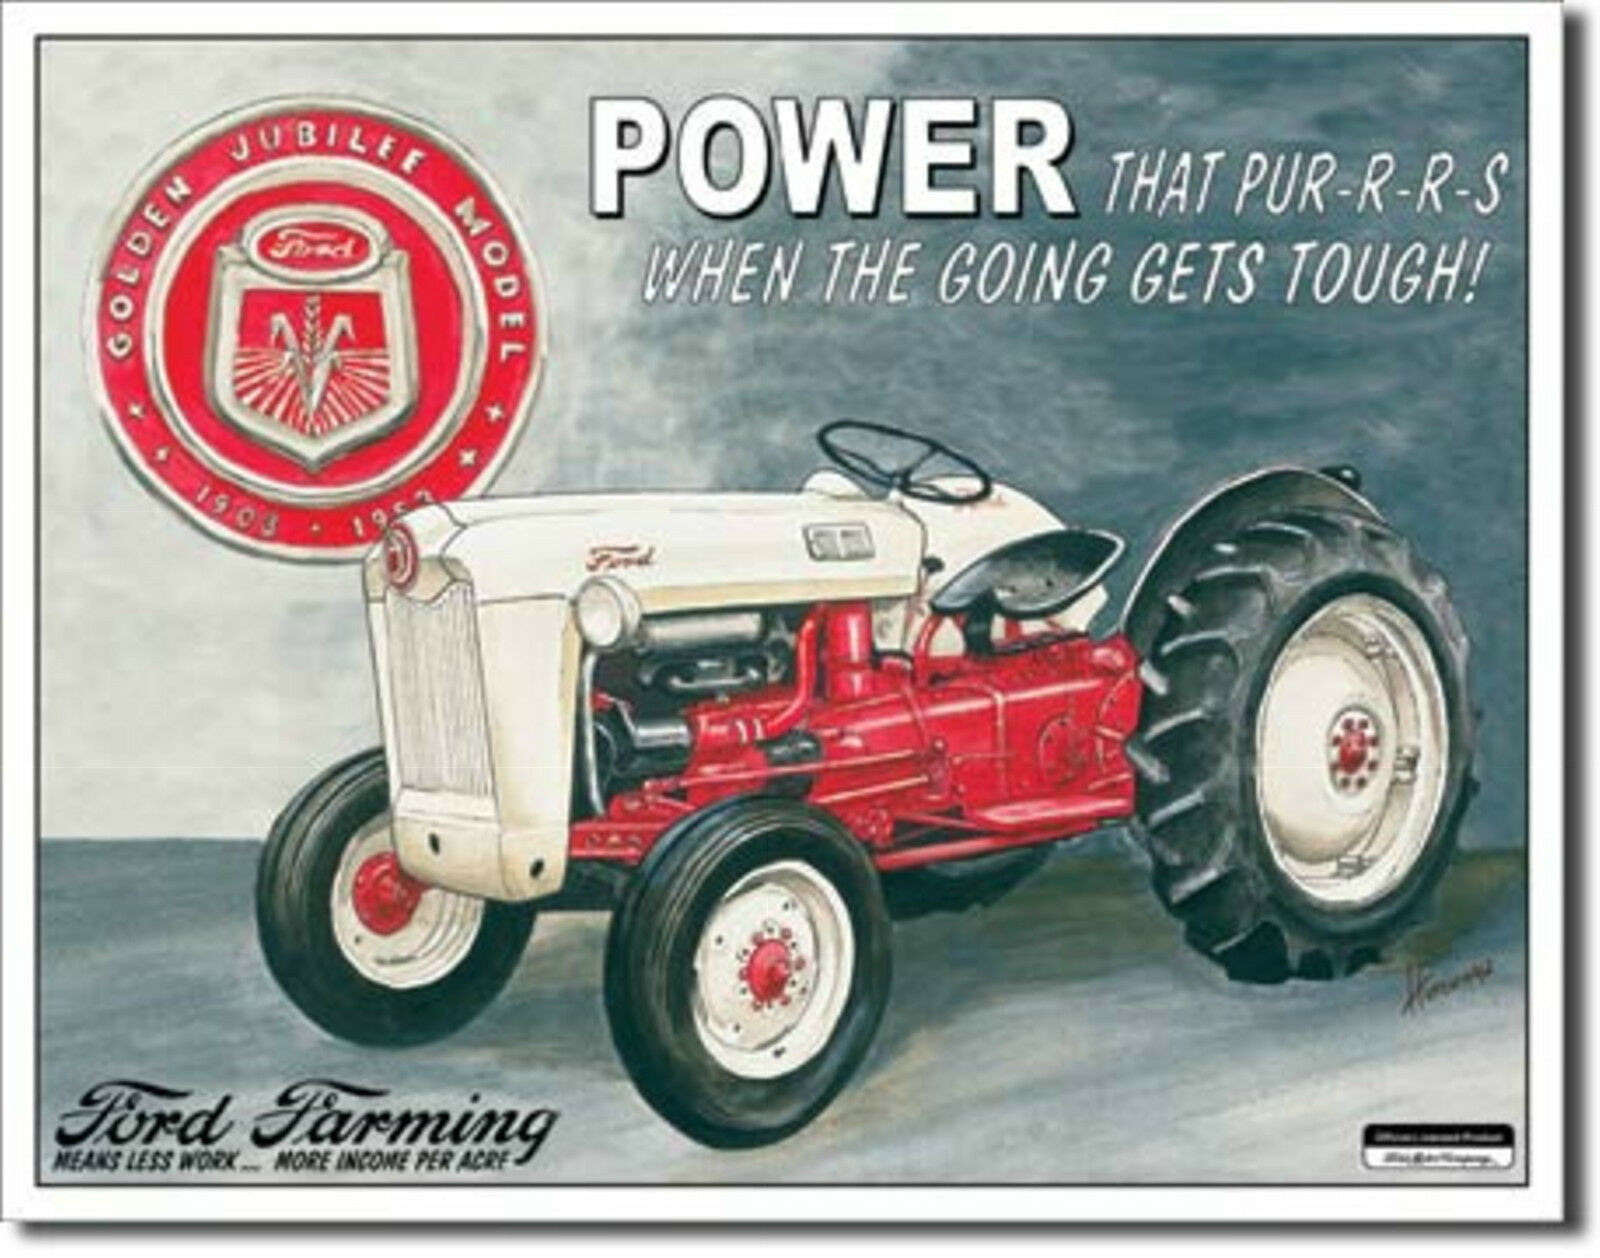 Ford Tractors Farming Golden Jubilee Model Metal Sign Tin New Vintage Style #699